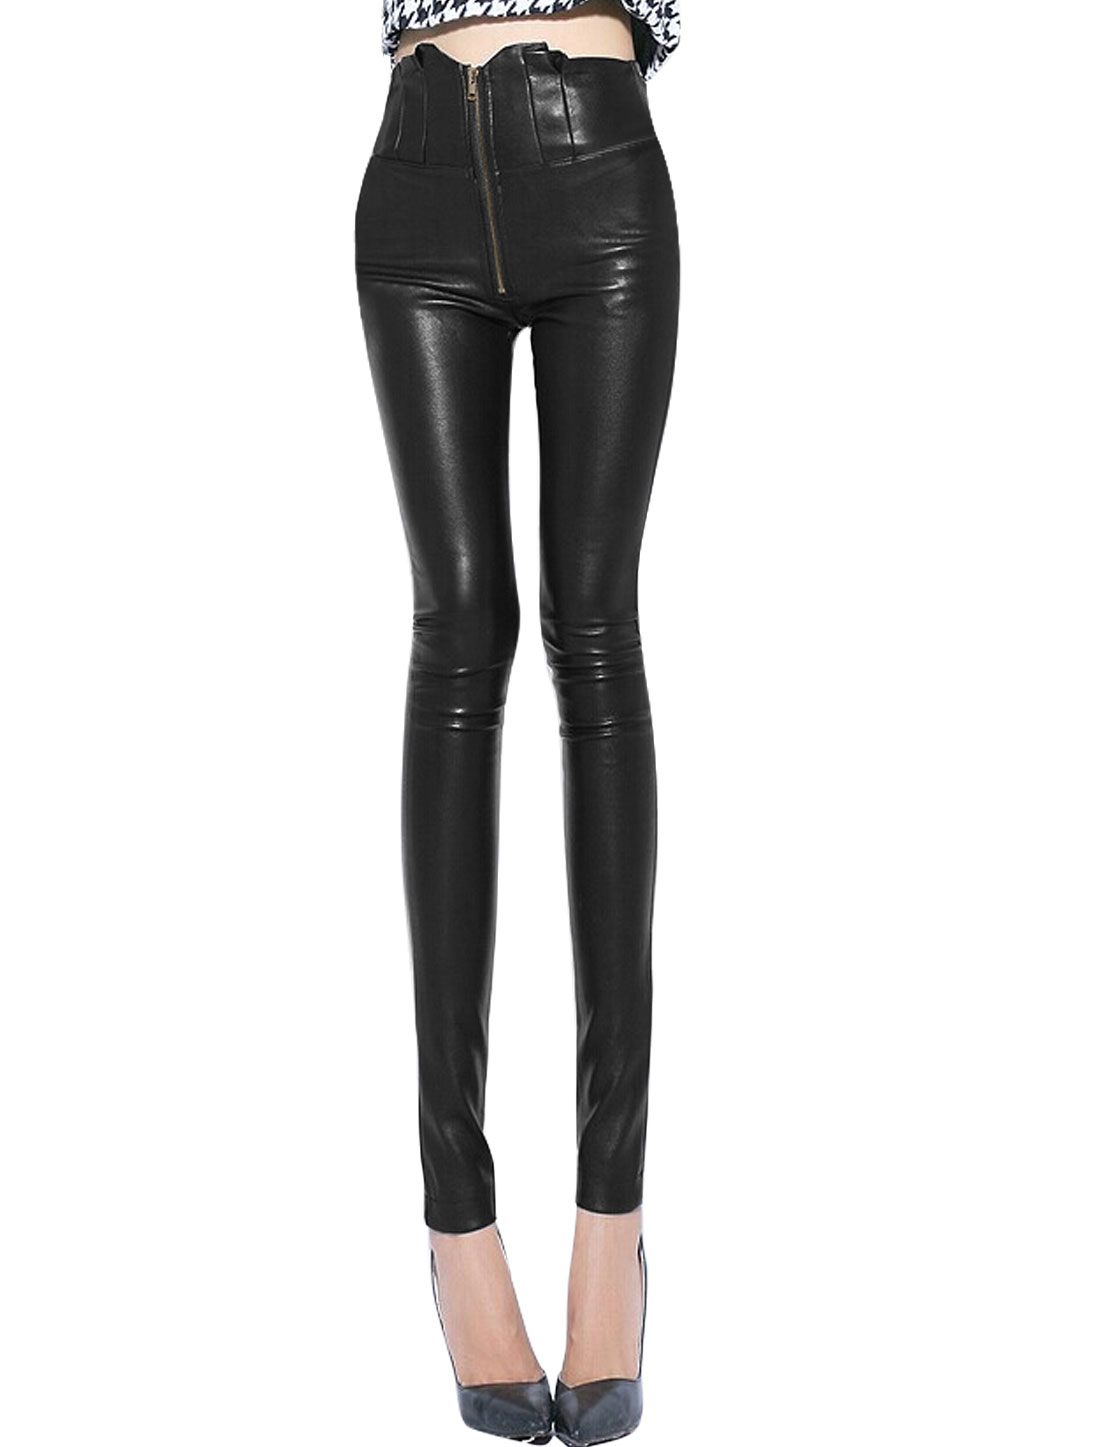 Women High Wasit Pleated Detail Zip Closure Chic Imitation Leather Pants Black XS